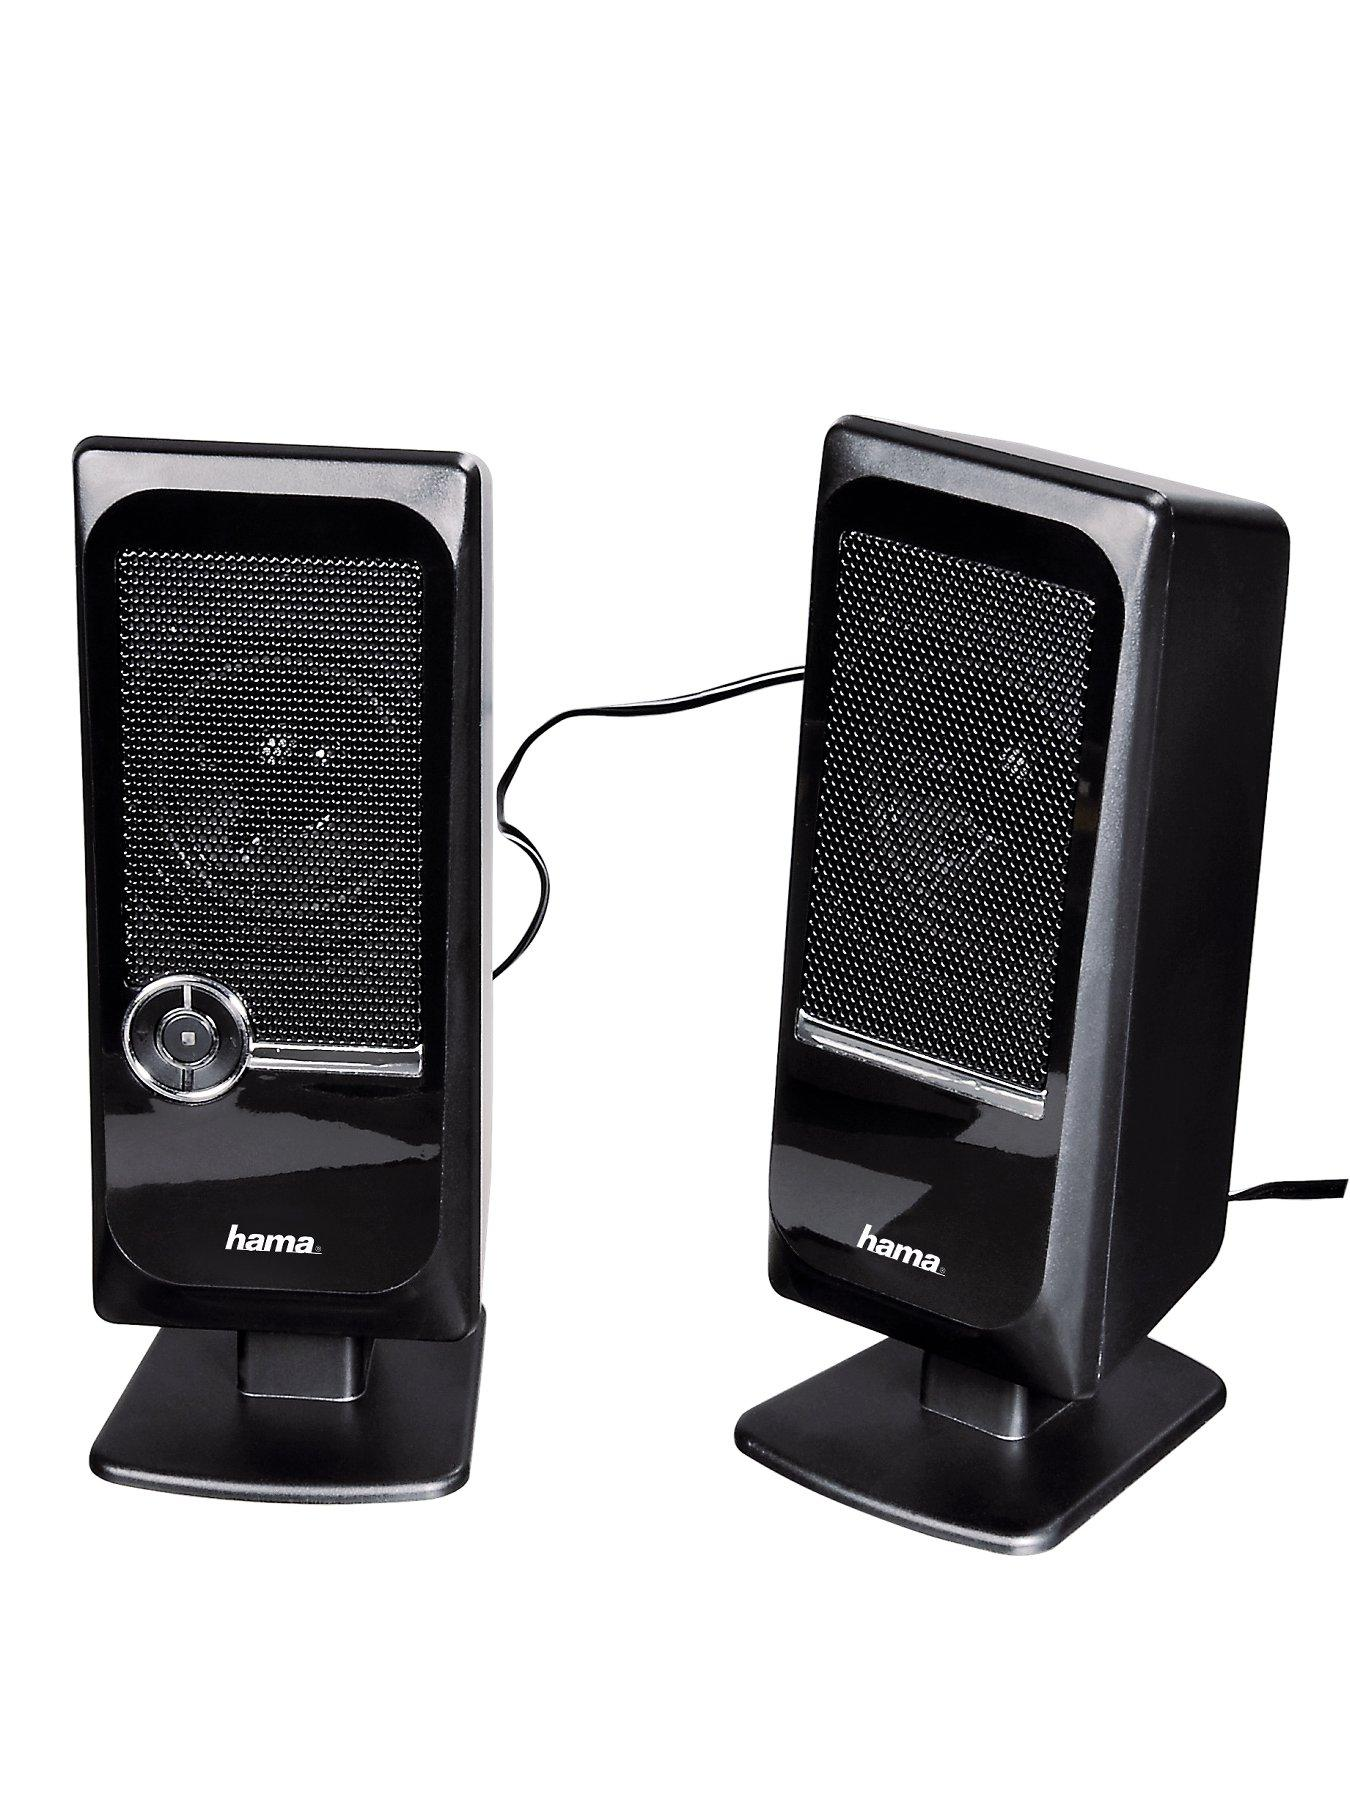 Hama Sonic Mobil 140 Portable PC Speaker